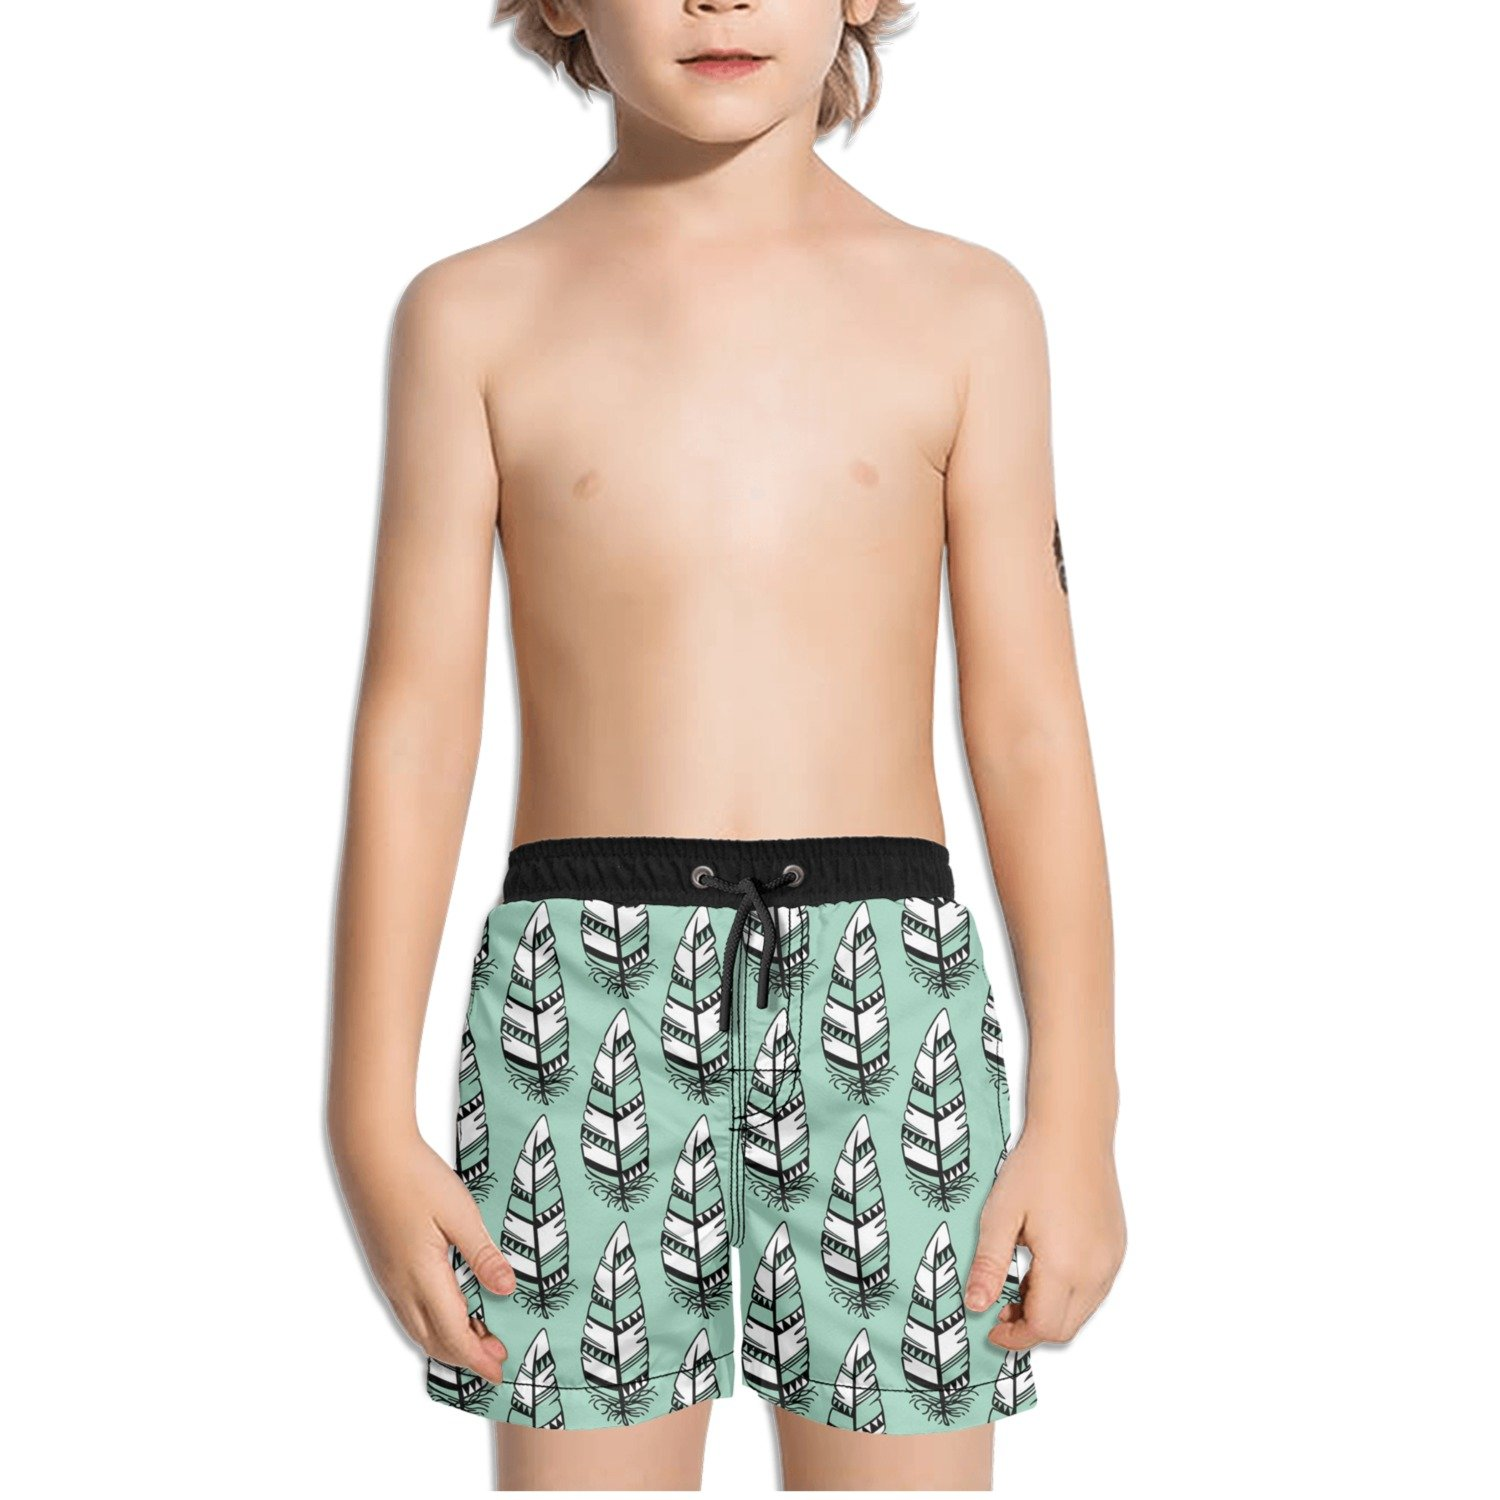 FullBo Nice Feathers Aztec Feather Little Boys Short Swim Trunks Quick Dry Beach Shorts